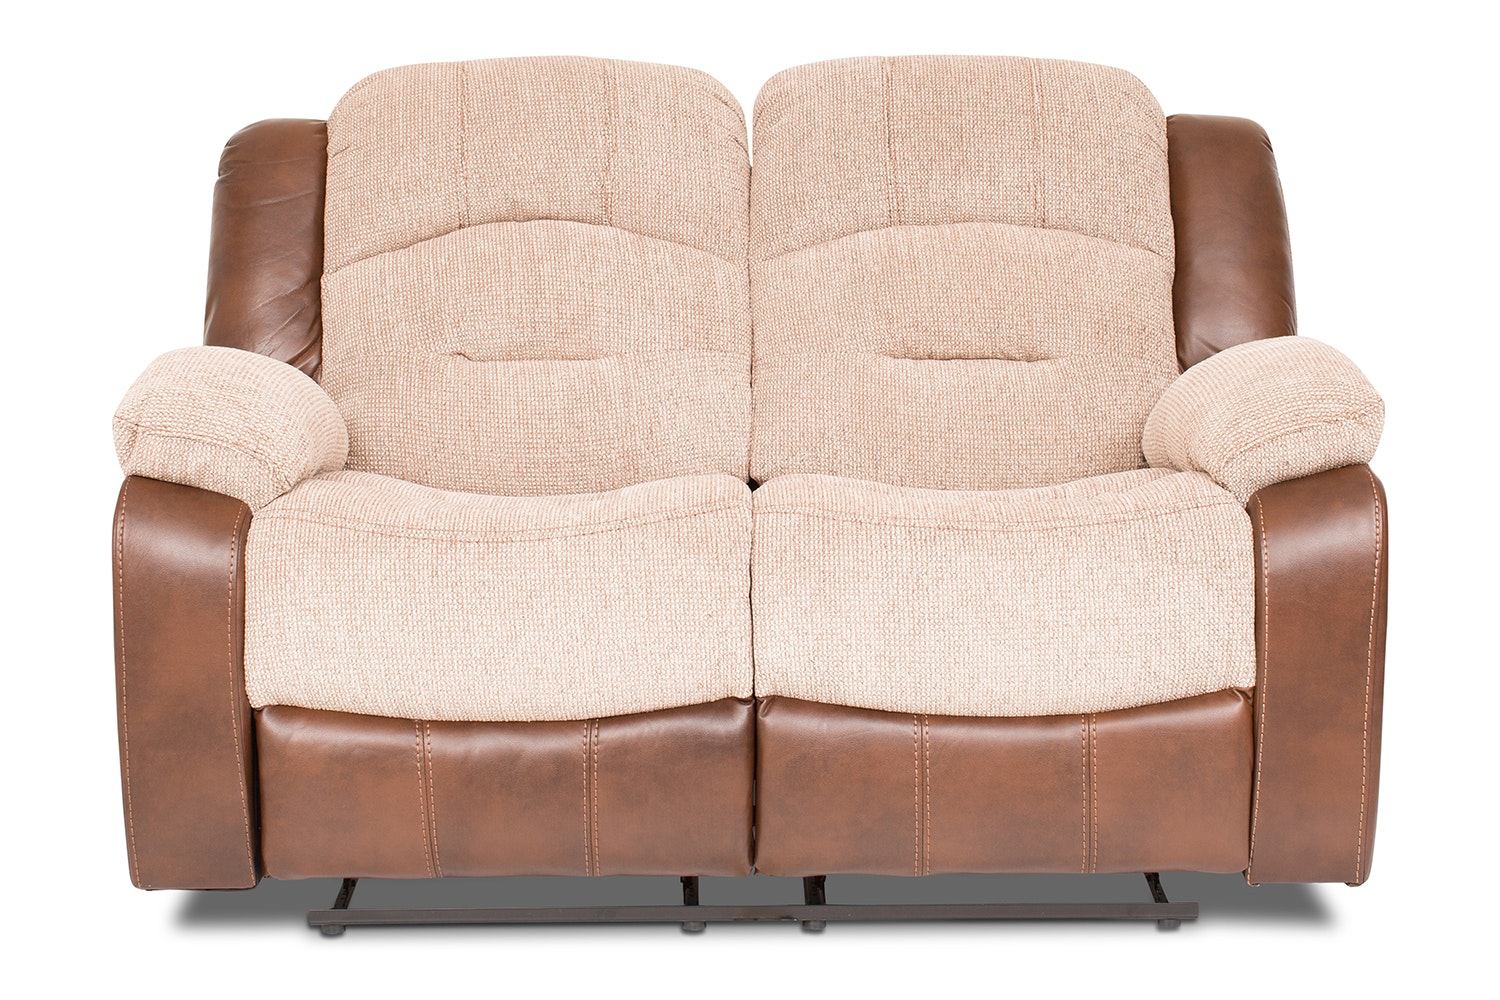 Mason 2 Seater Recliner | Tan & Beige